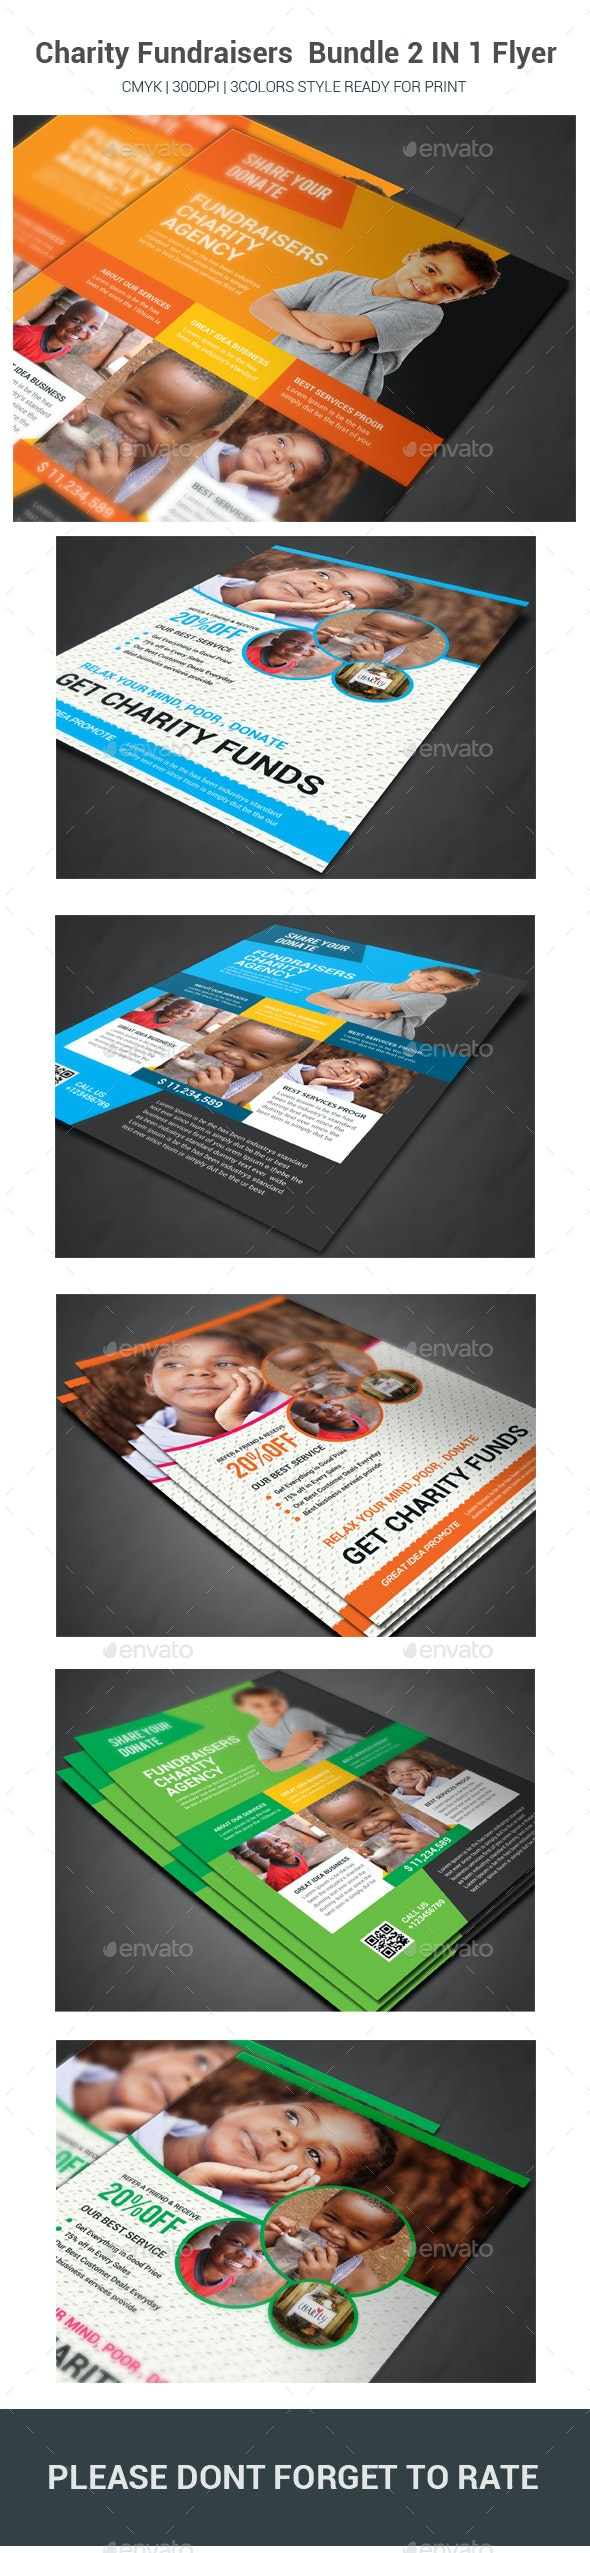 Charity Fundraisers  Bundle 2 IN 1 Flyer - Flyers Print Templates